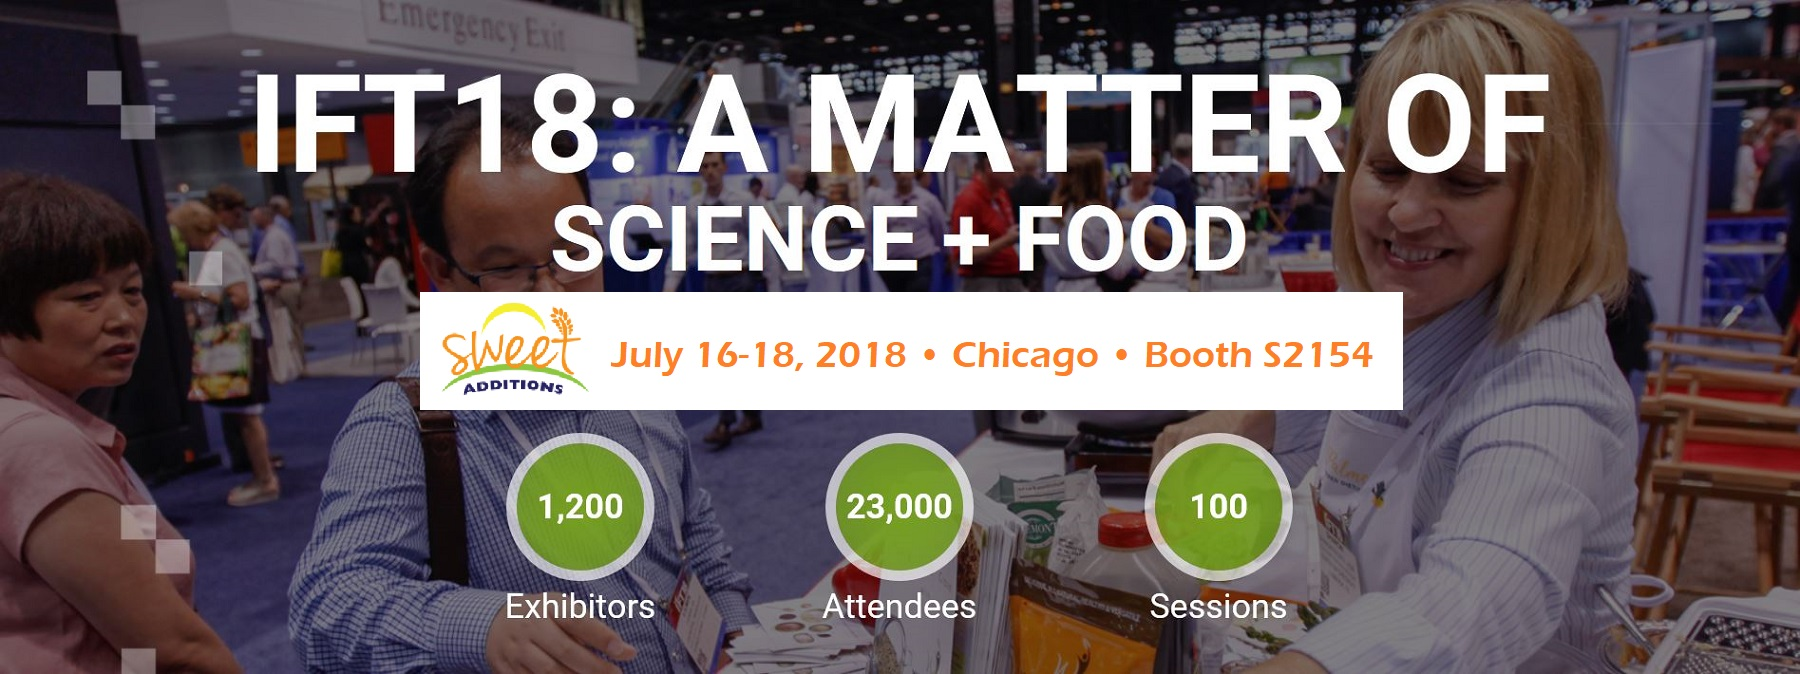 Sweet Additions Exhibiting at the 2018 IFT Tradeshow in July in the Windy City